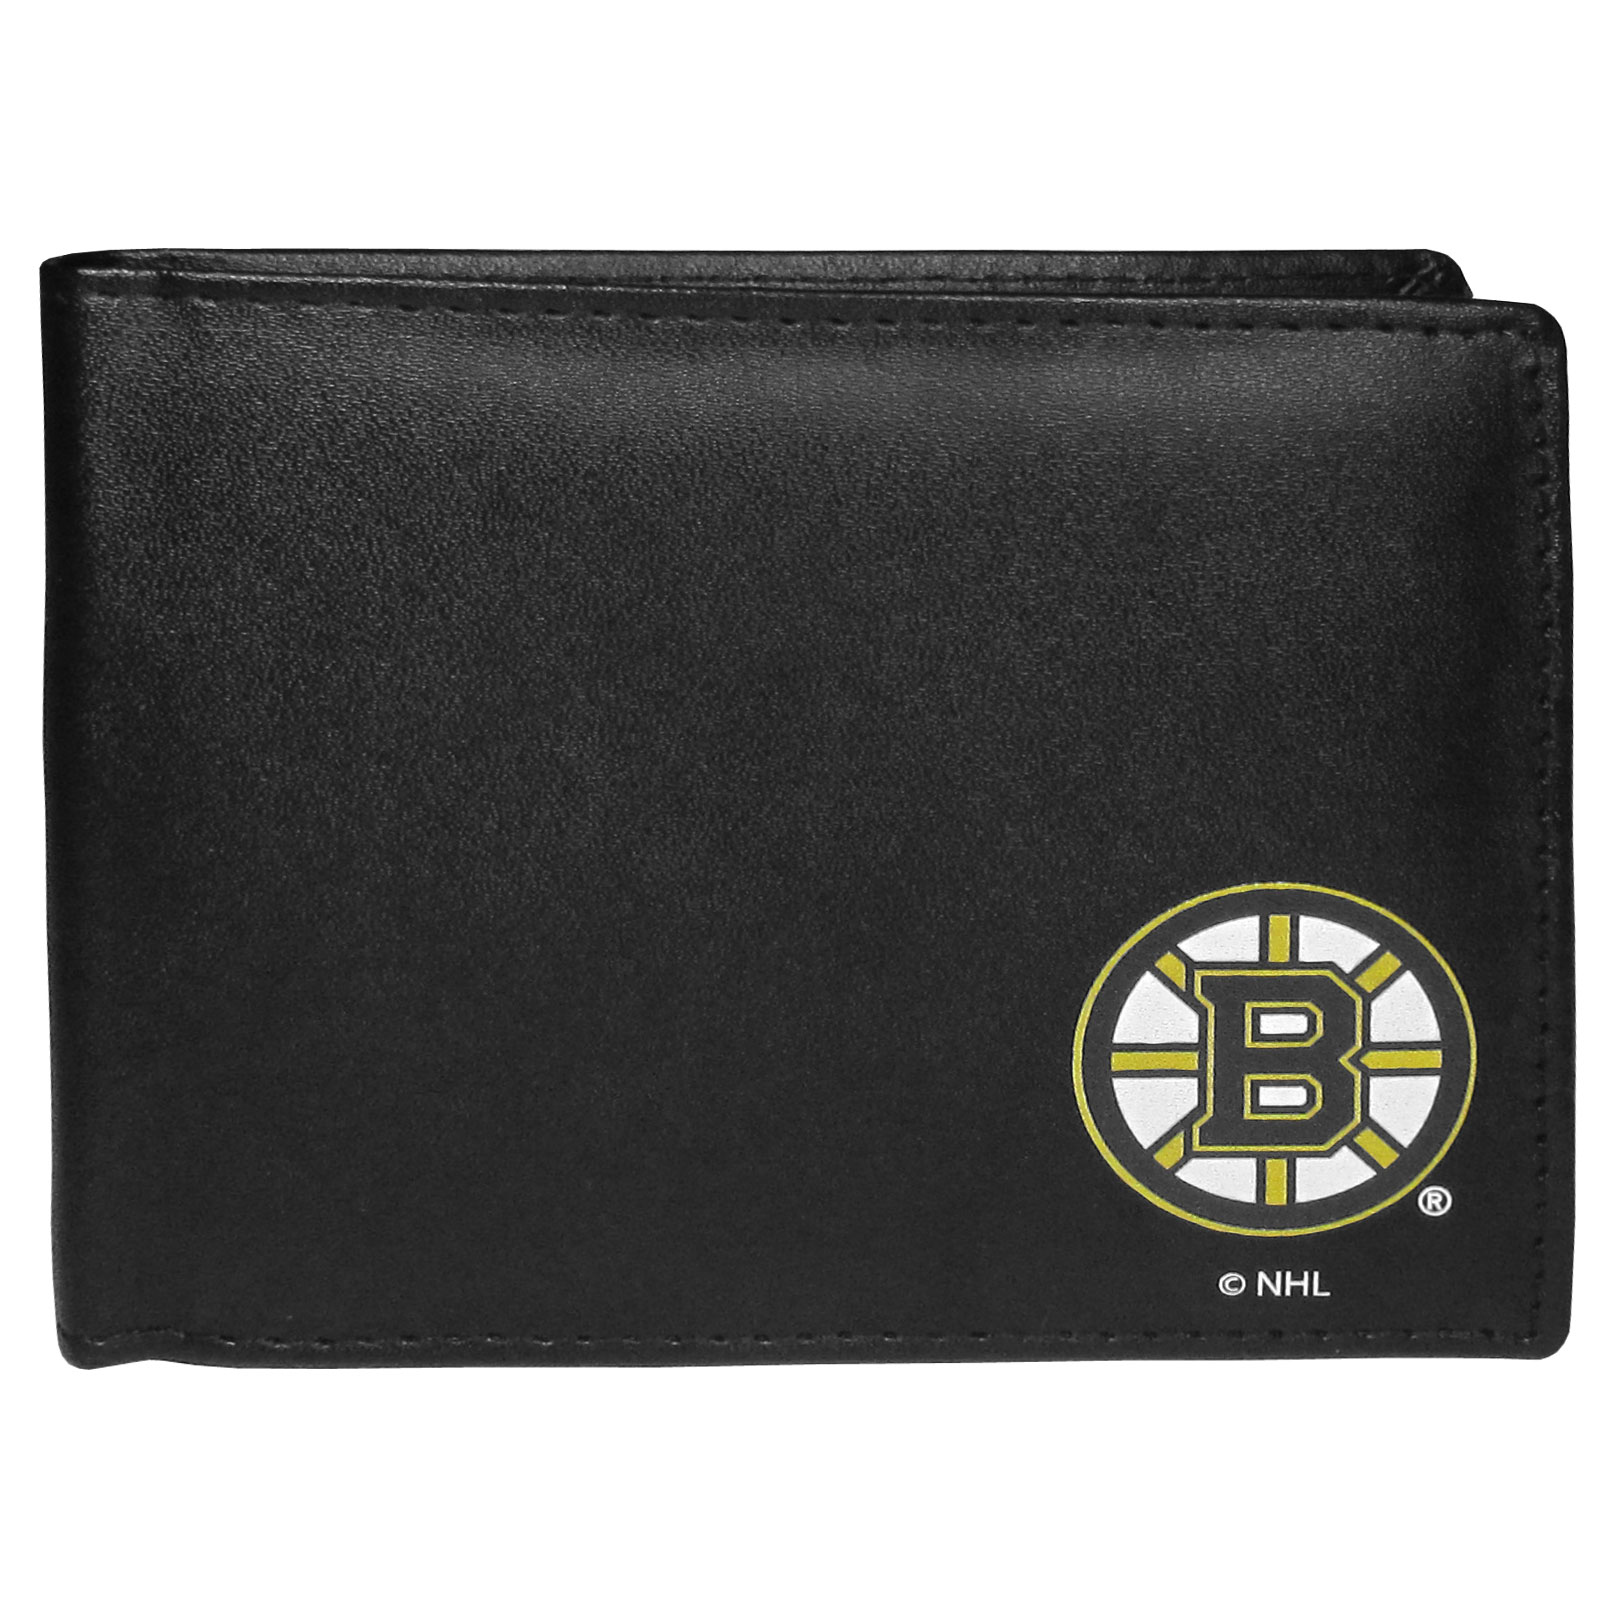 Boston Bruins Bi-fold Wallet - Sports fans do not have to sacrifice style with this classic bi-fold wallet that sports a Boston Bruins emblem. This men's fashion accessory has a leather grain look and expert craftmanship for a quality wallet at a great price. The wallet features inner credit card slots, windowed ID slot and a large billfold pocket. The front of the wallet features a printed team logo.